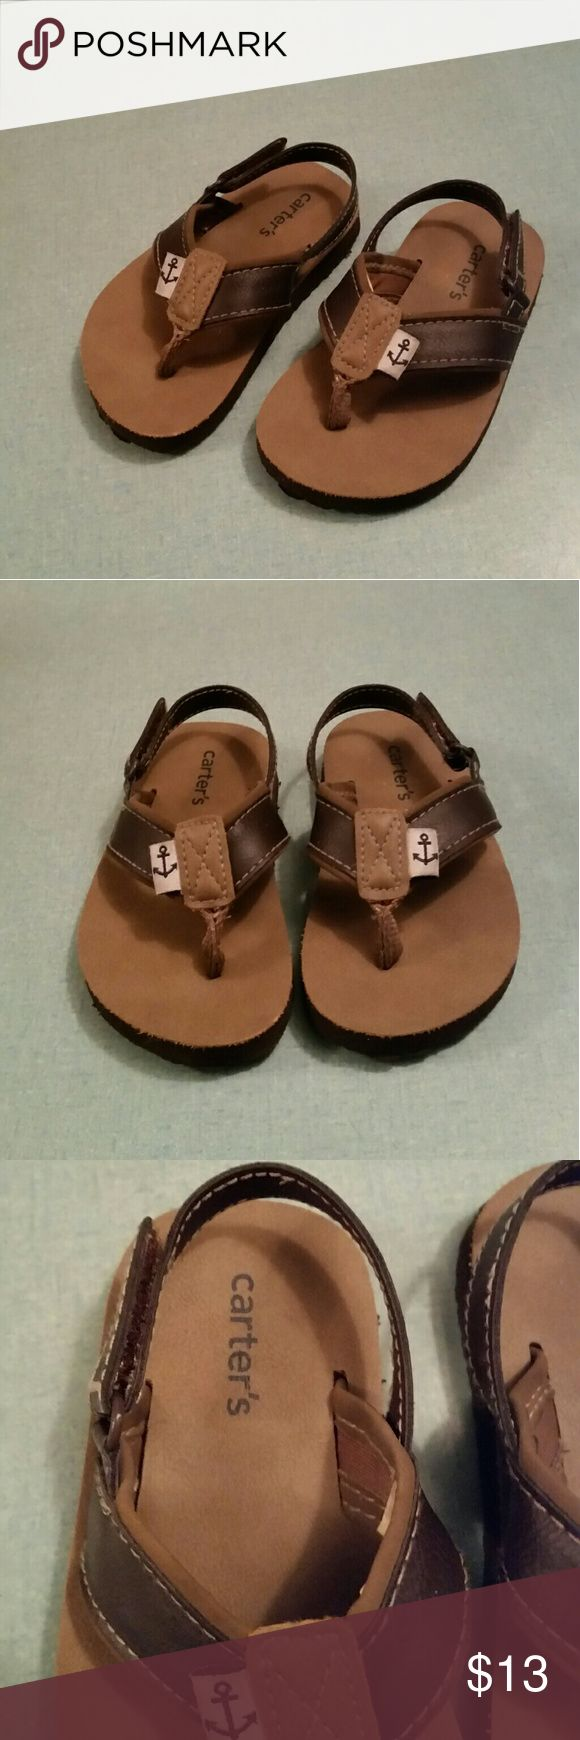 Carter's Brown Leather Boys Toddler Flip Flops Carter's Brown faux leather flip flops with velcro slip-on strap Size 6 Toddler boys From tip of toe to heel is 6 inches long Pre~owned, only wore once, in excellent condition Carter's Shoes Sandals & Flip Flops